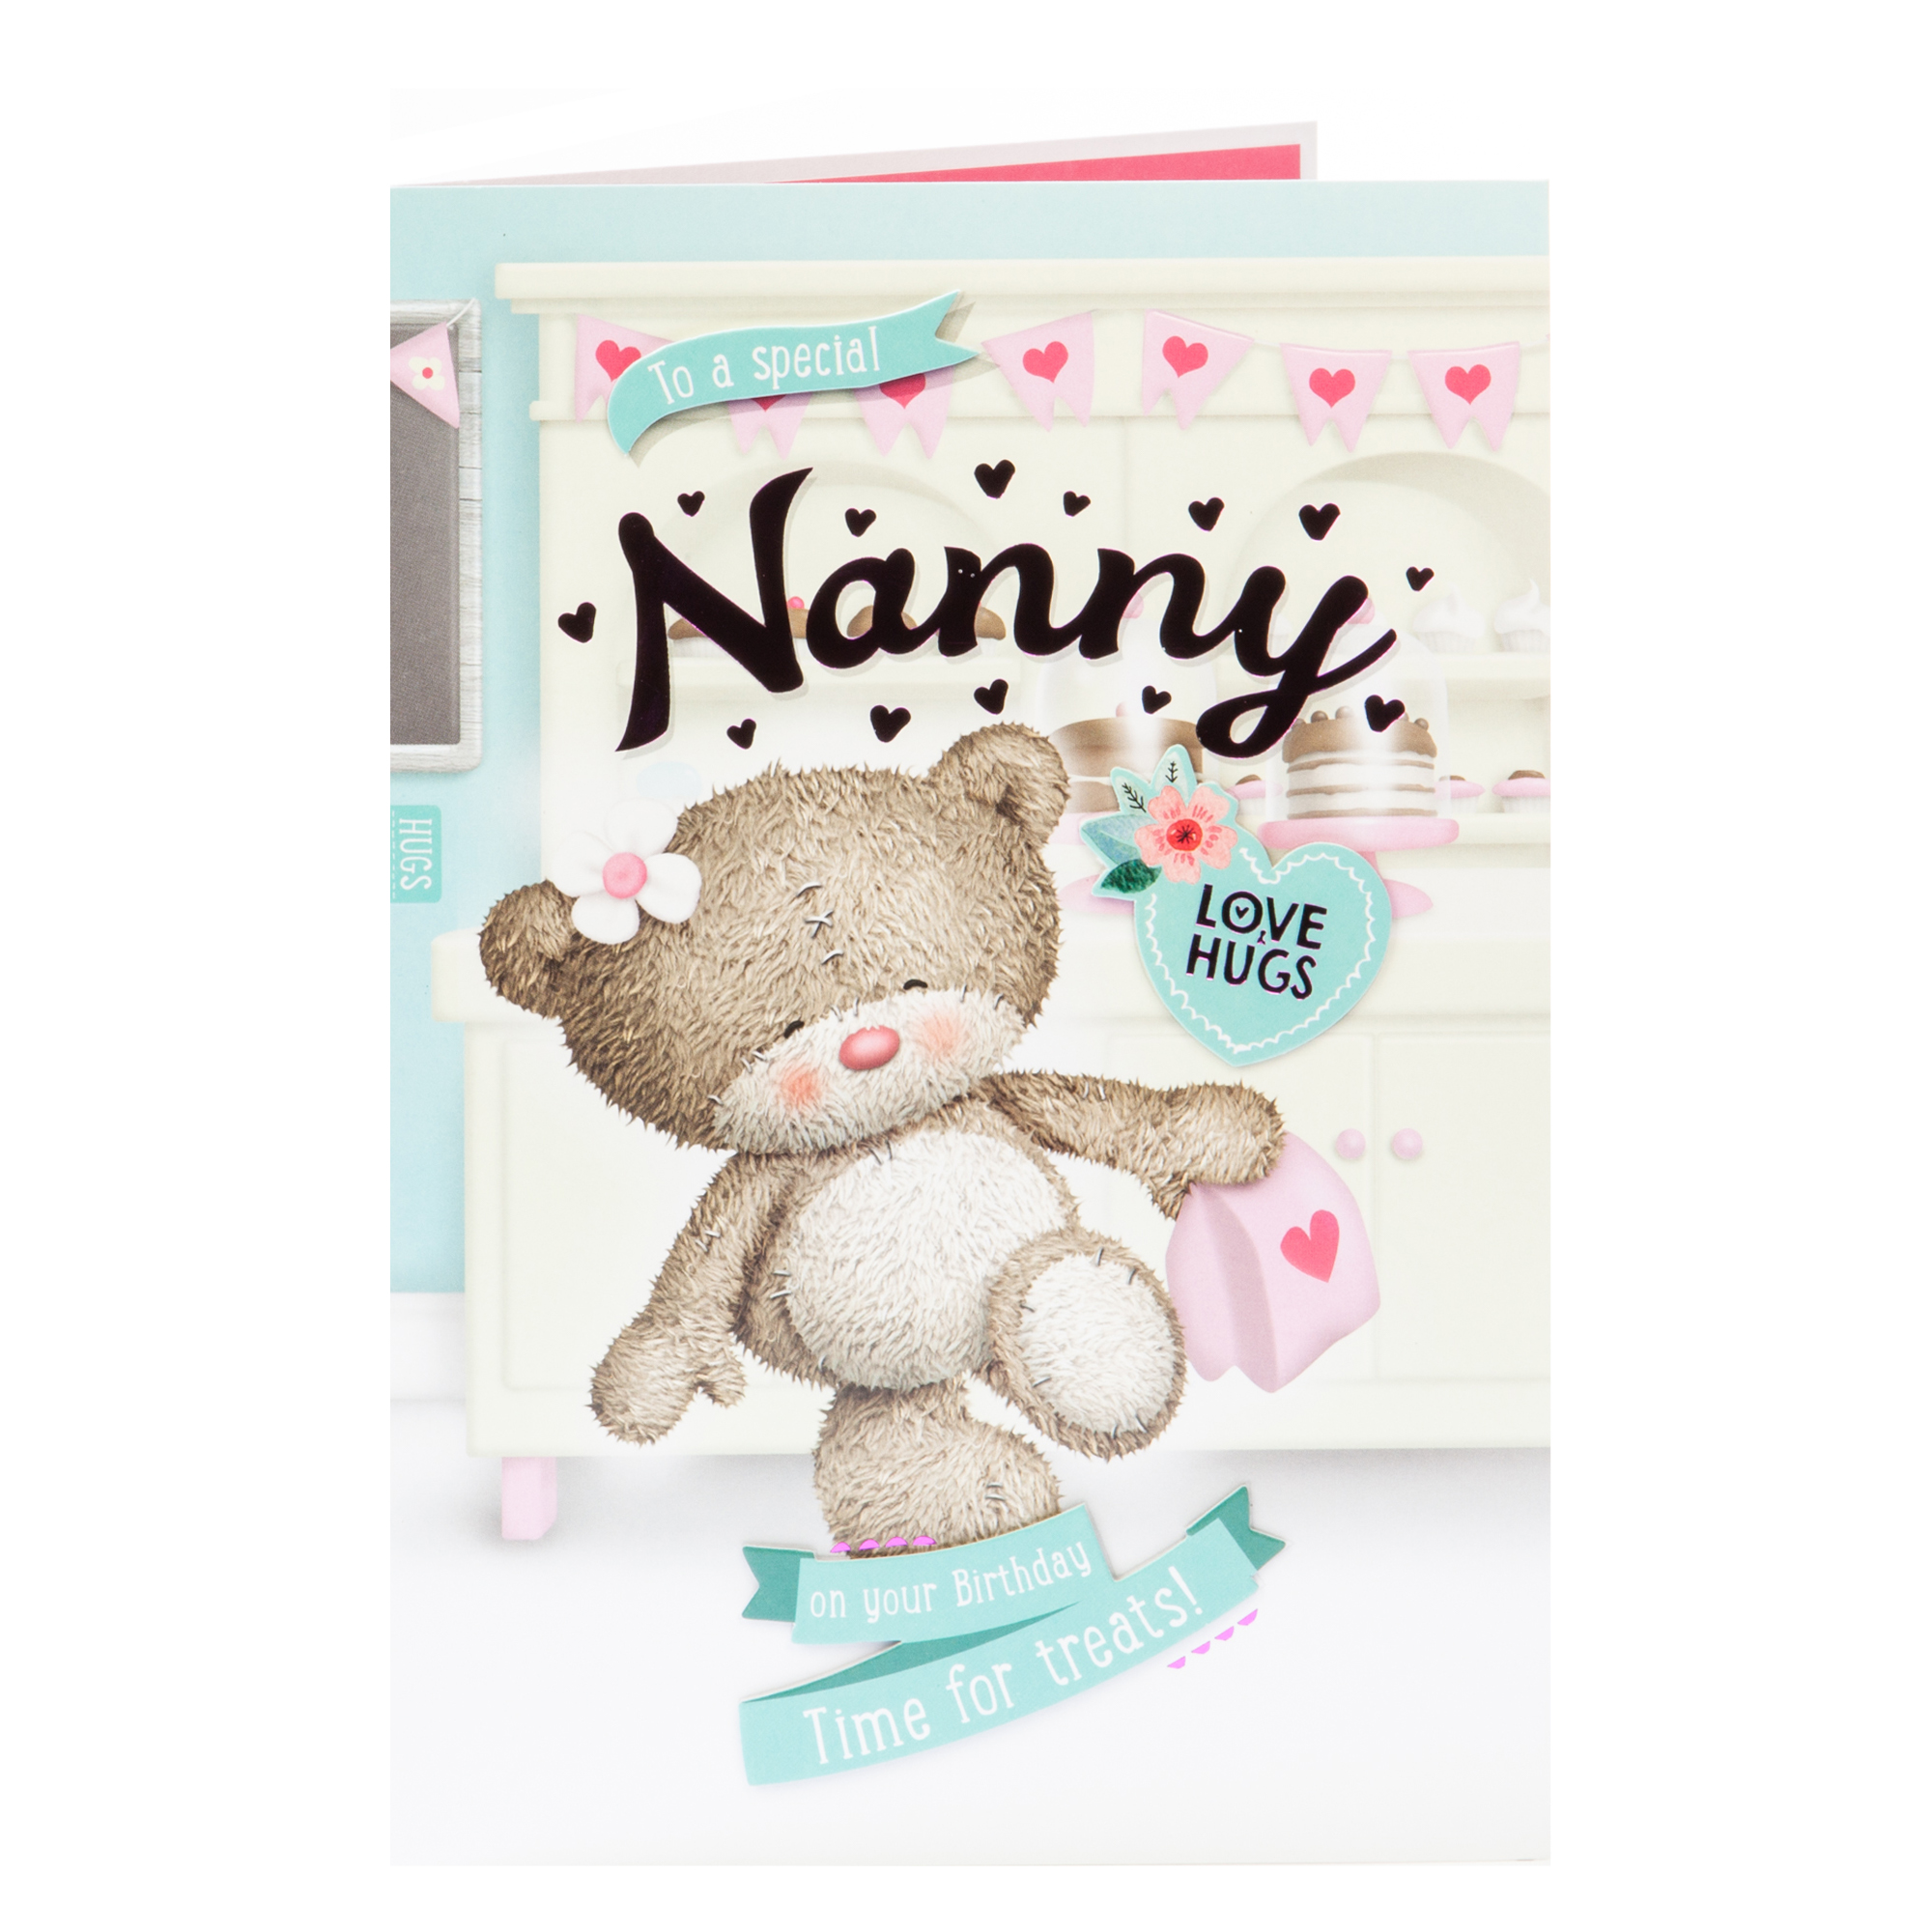 Hugs Bear Birthday Card - To A Special Nanny